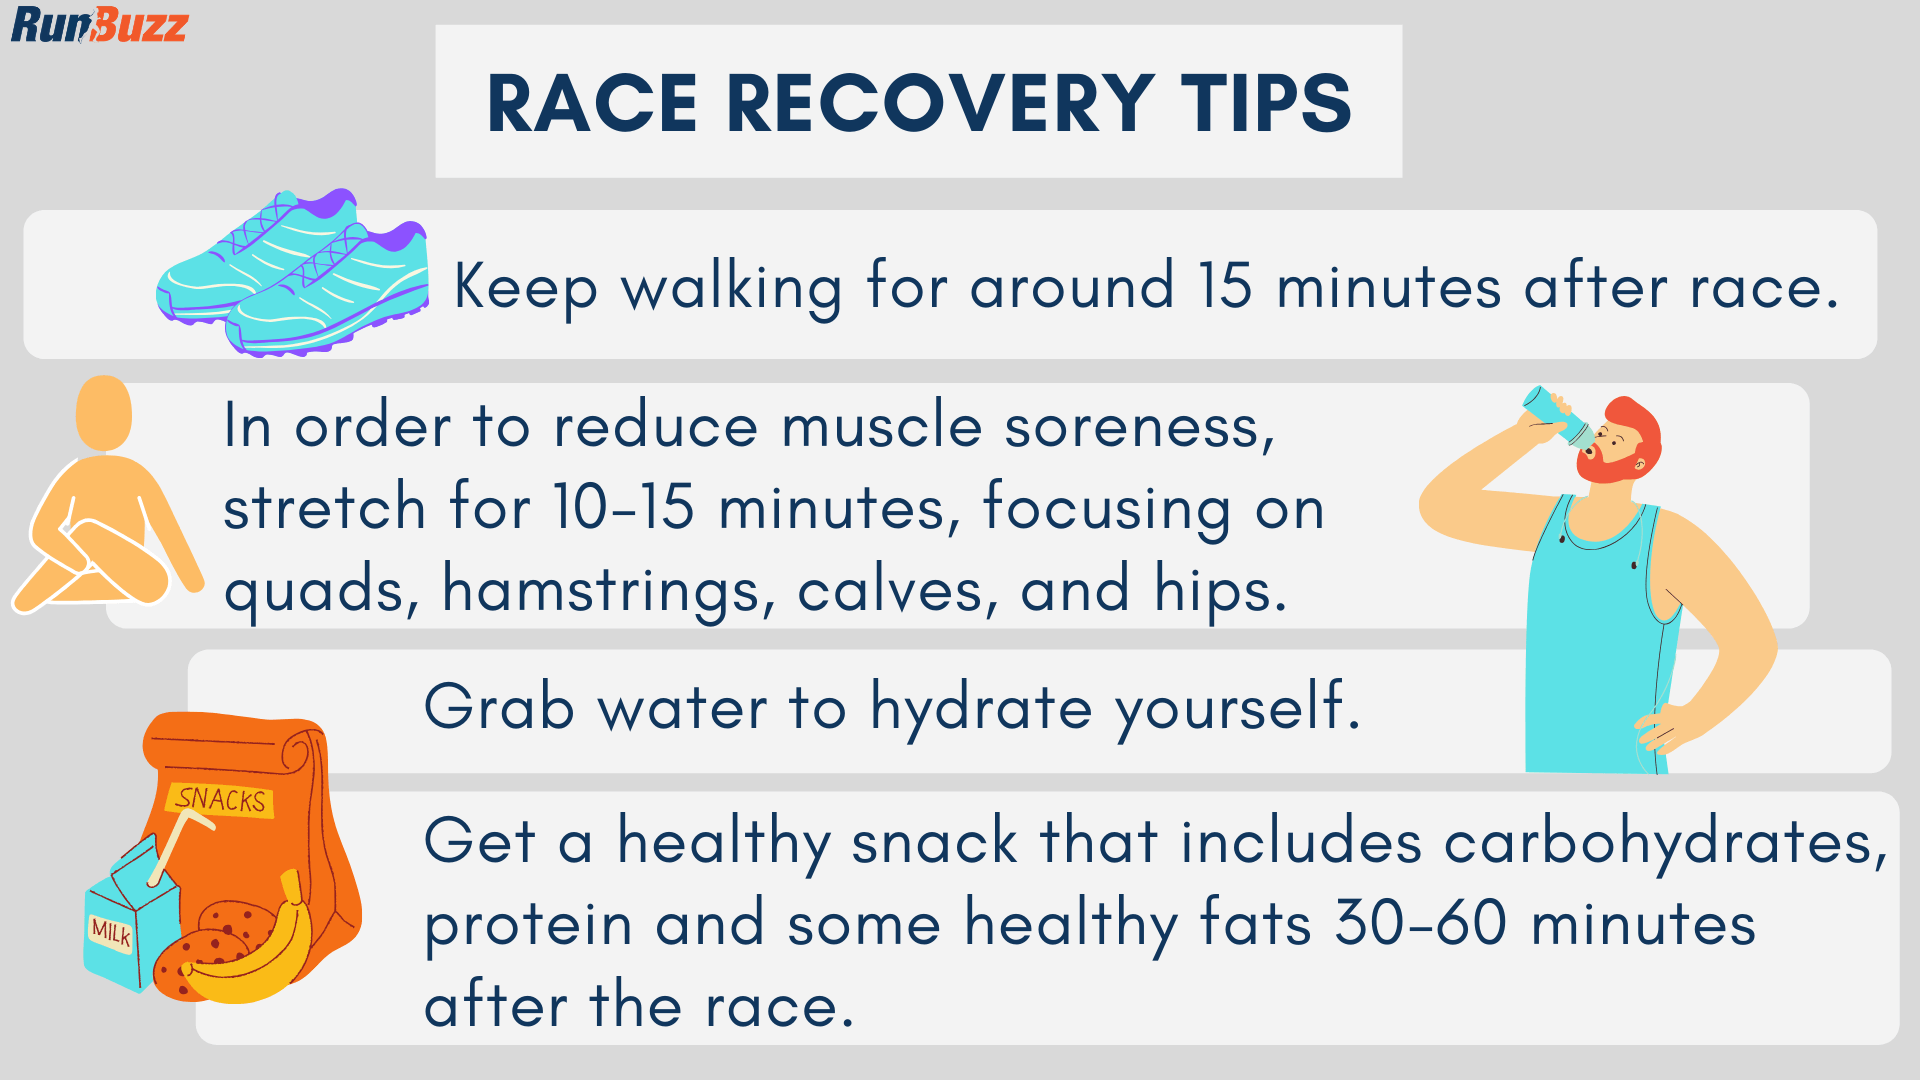 RACE-RECOVERY-TIPS